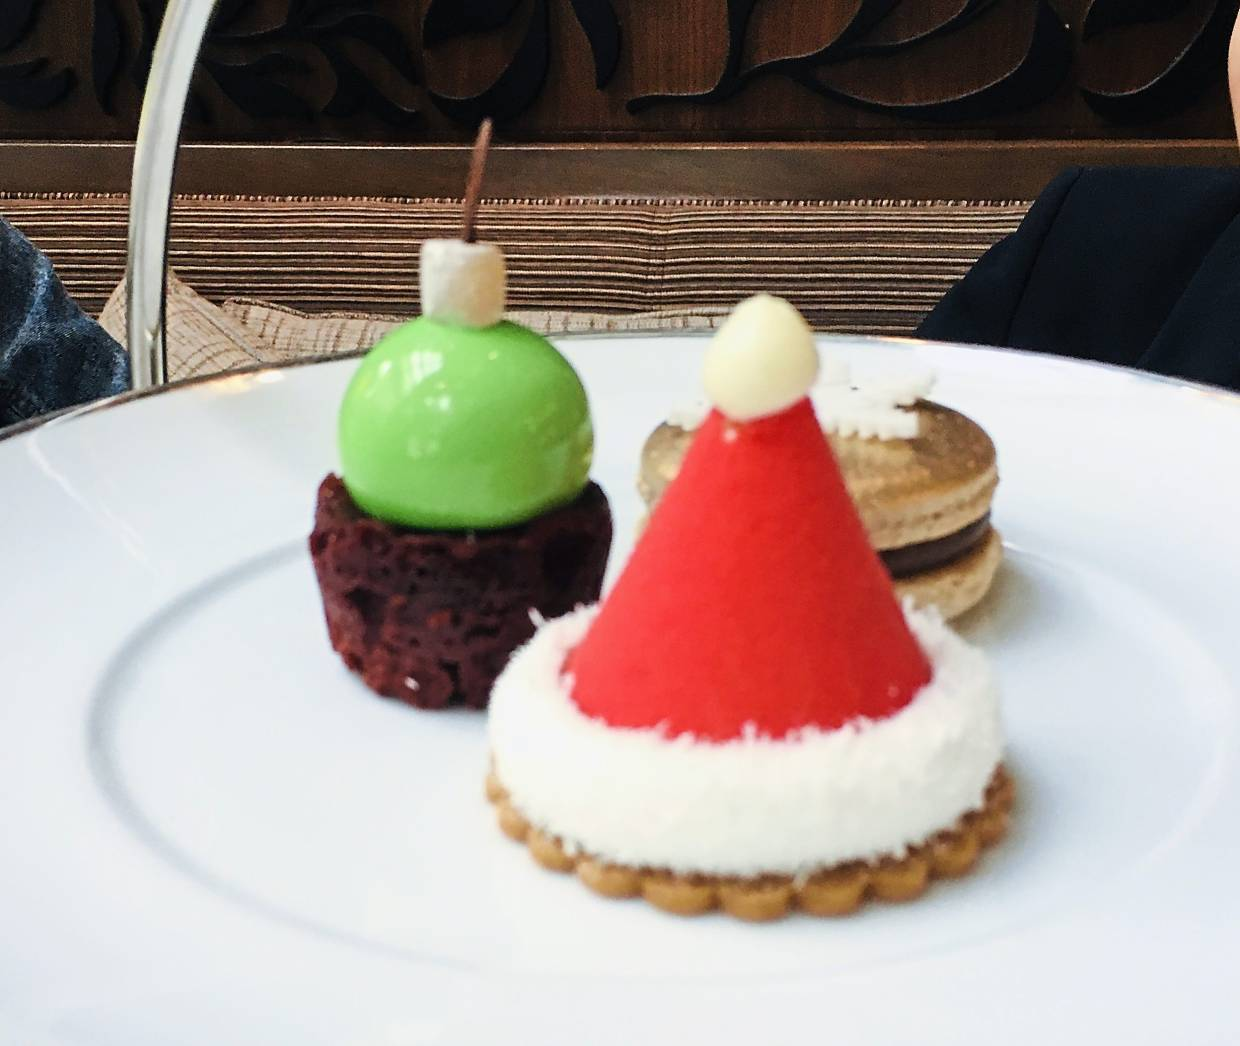 Santa's Hat, Neon Green Red Velvet Bauble and Gingerbread Mandarin Macaron, which are served on the top plate.